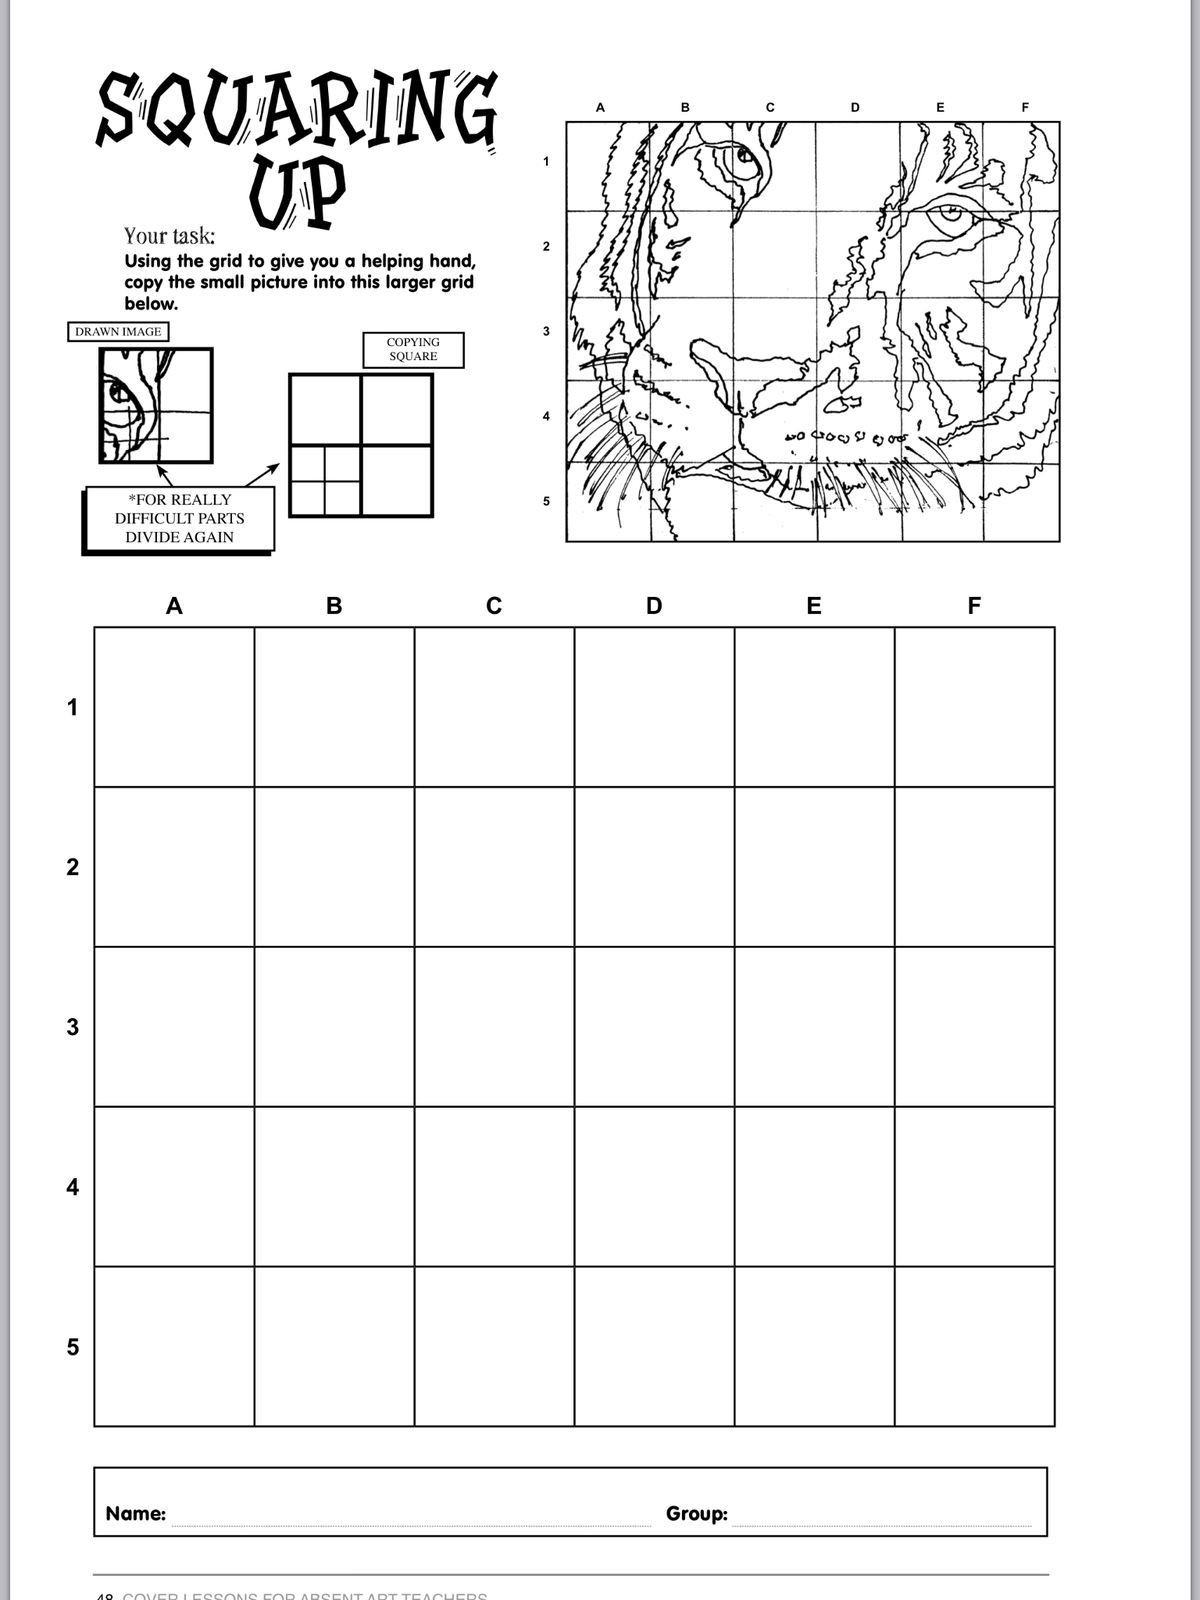 Middle School Art Worksheets 1e F2bf2ab0ad36b1847bf02a3e0 1 200—1 600 Pixels